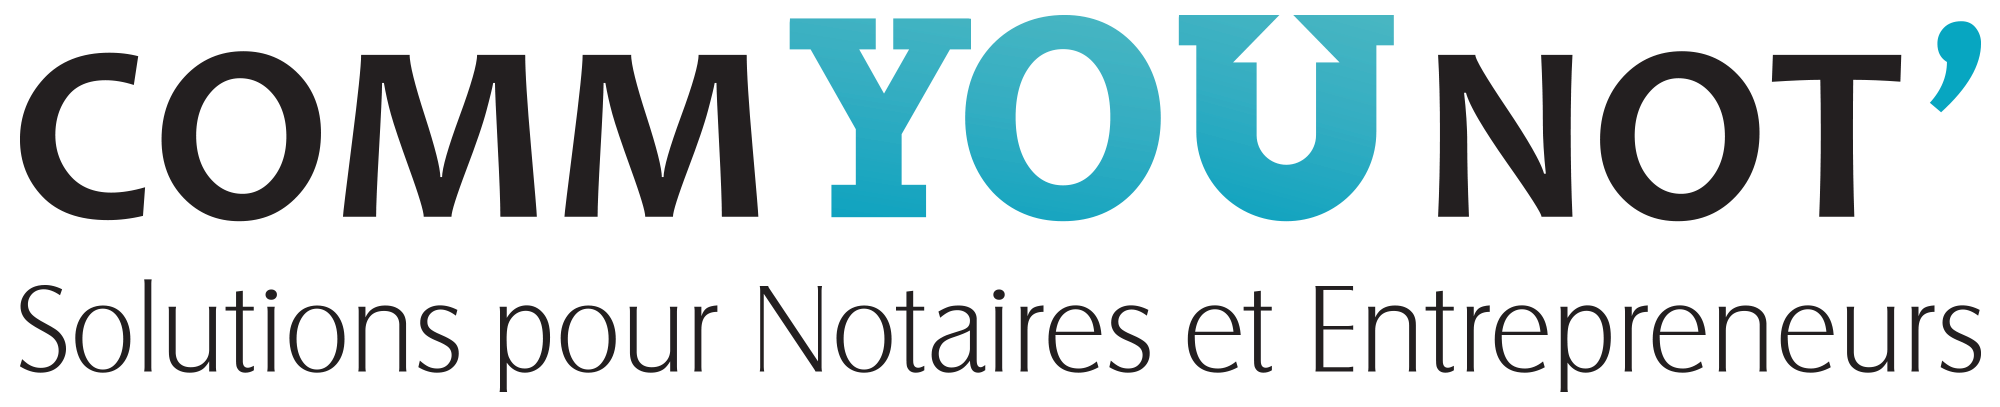 logo-commyounot